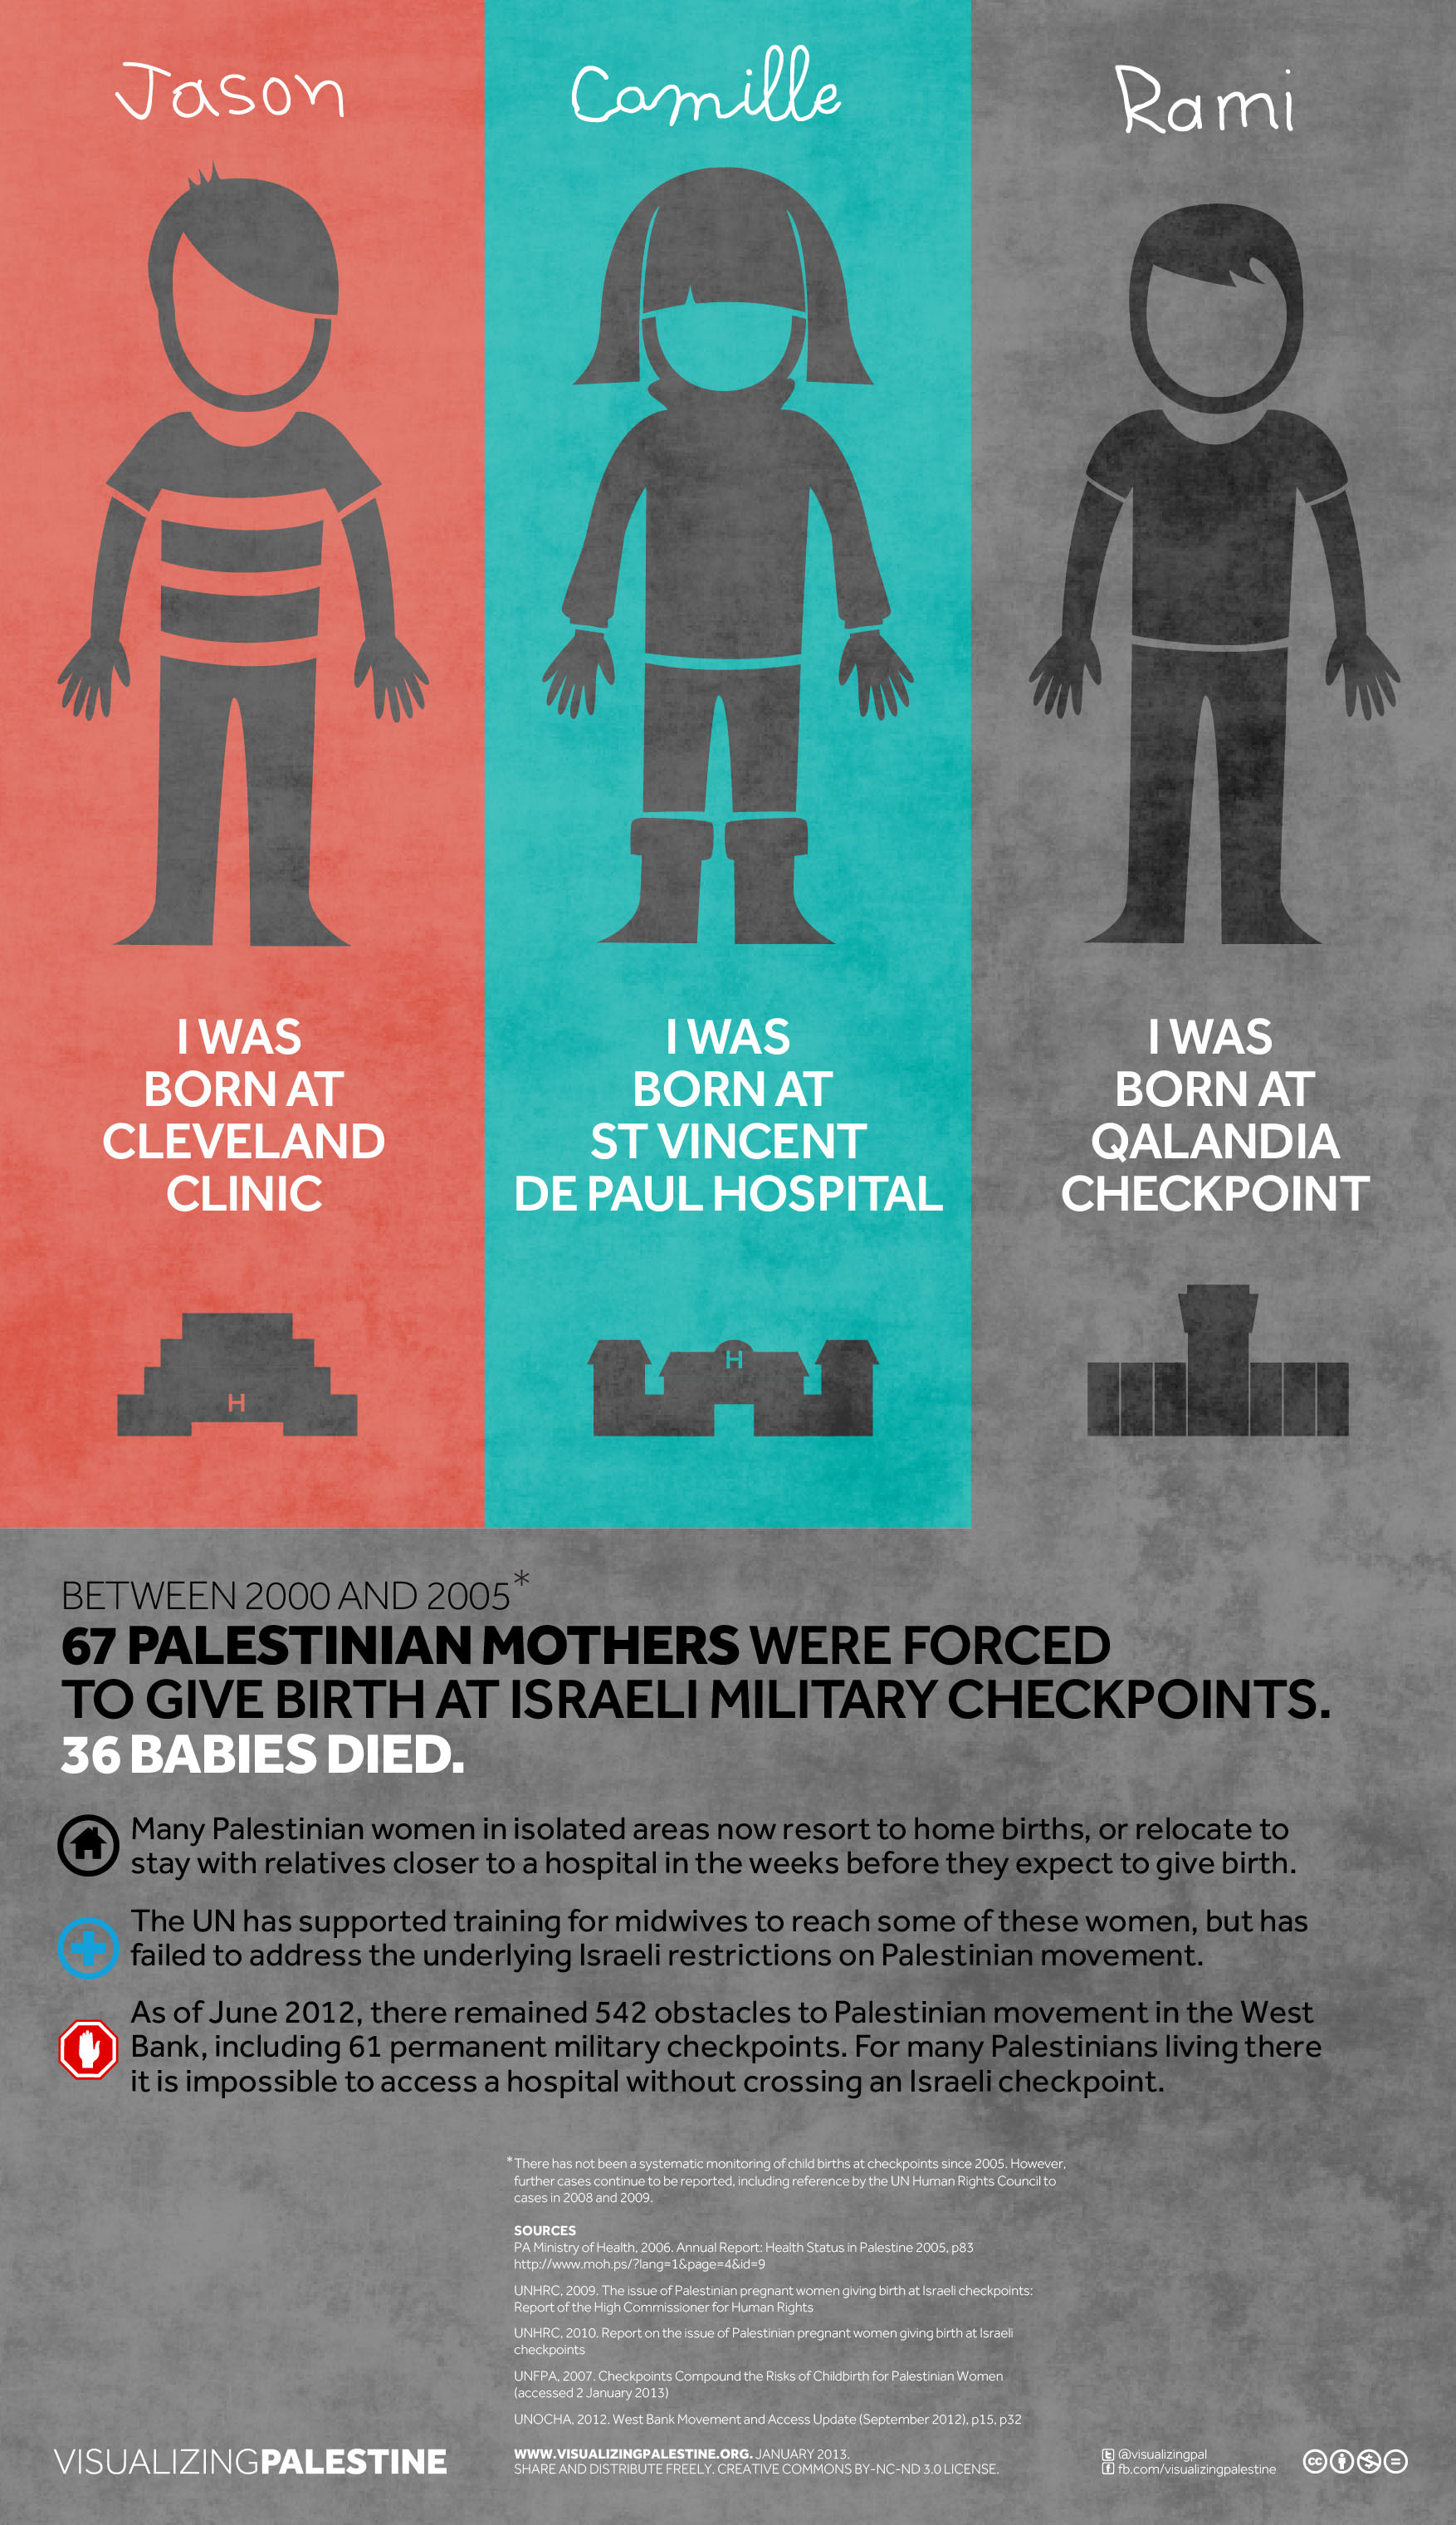 Forced Palestinian births at Israeli checkpoints: 67 from 2000-2005; 36 babies DIED